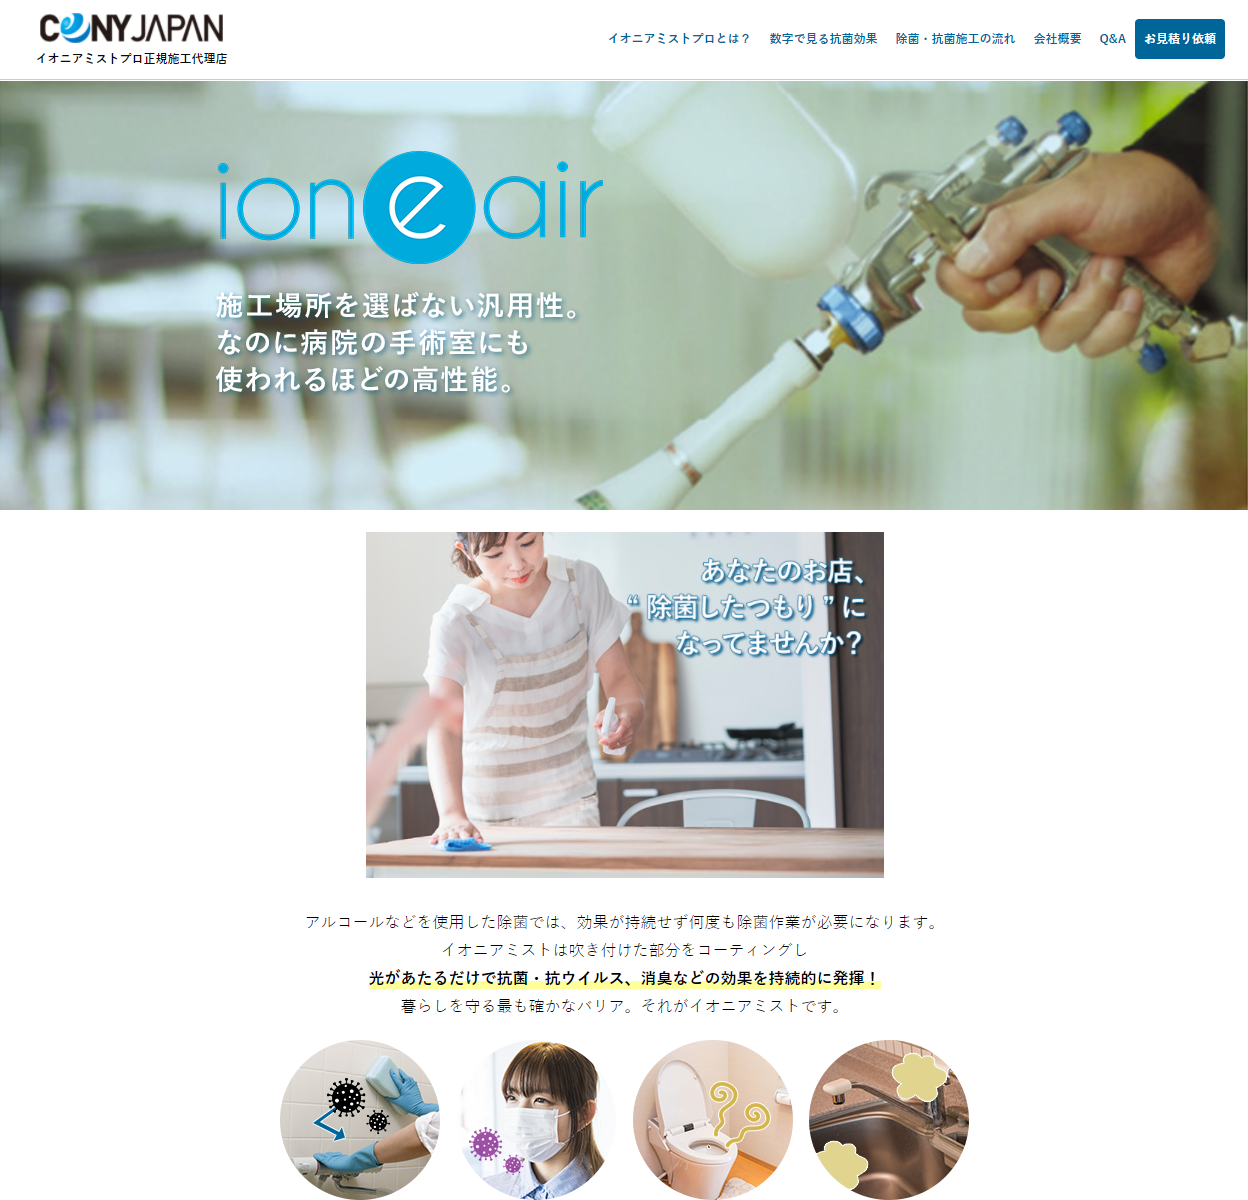 """<span class=""""title"""">株式会社CONYJAPANの口コミや評判</span>"""